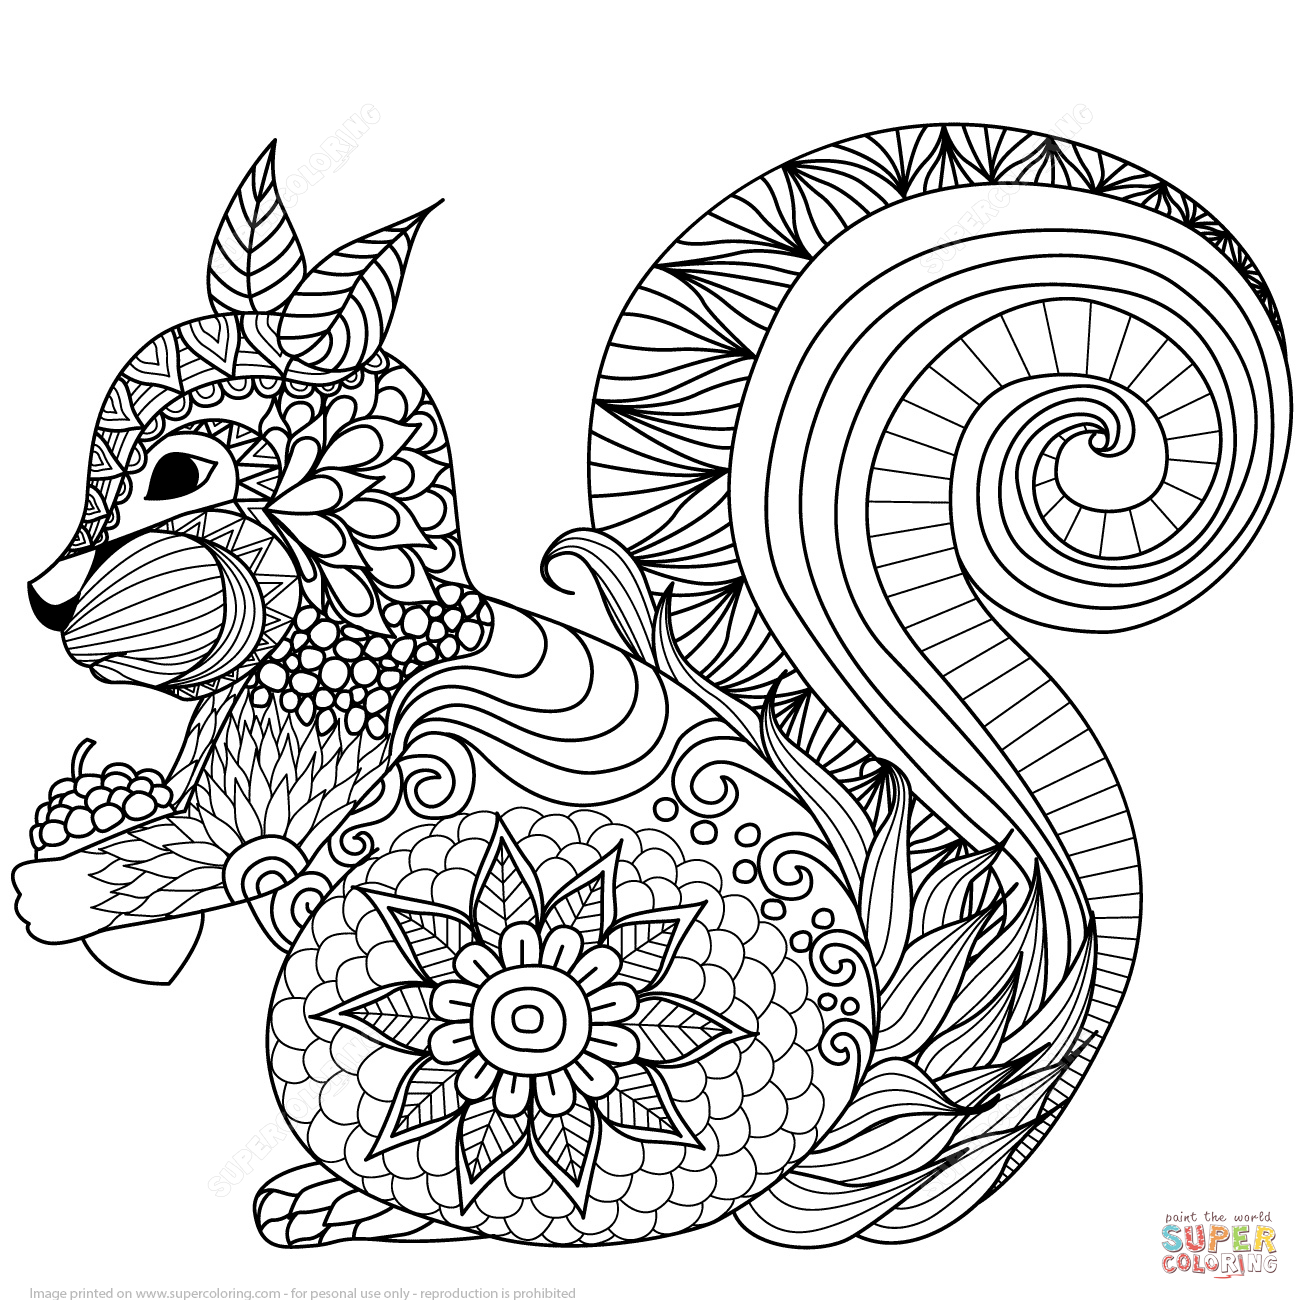 Zen coloring pages printable